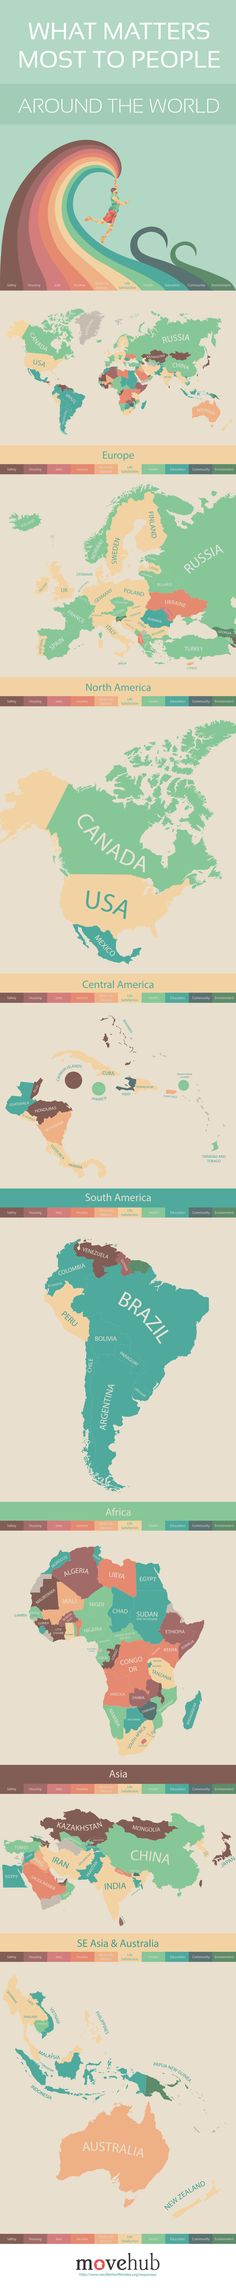 Infographic: What Matters Most To People Around The World - DesignTAXI.com